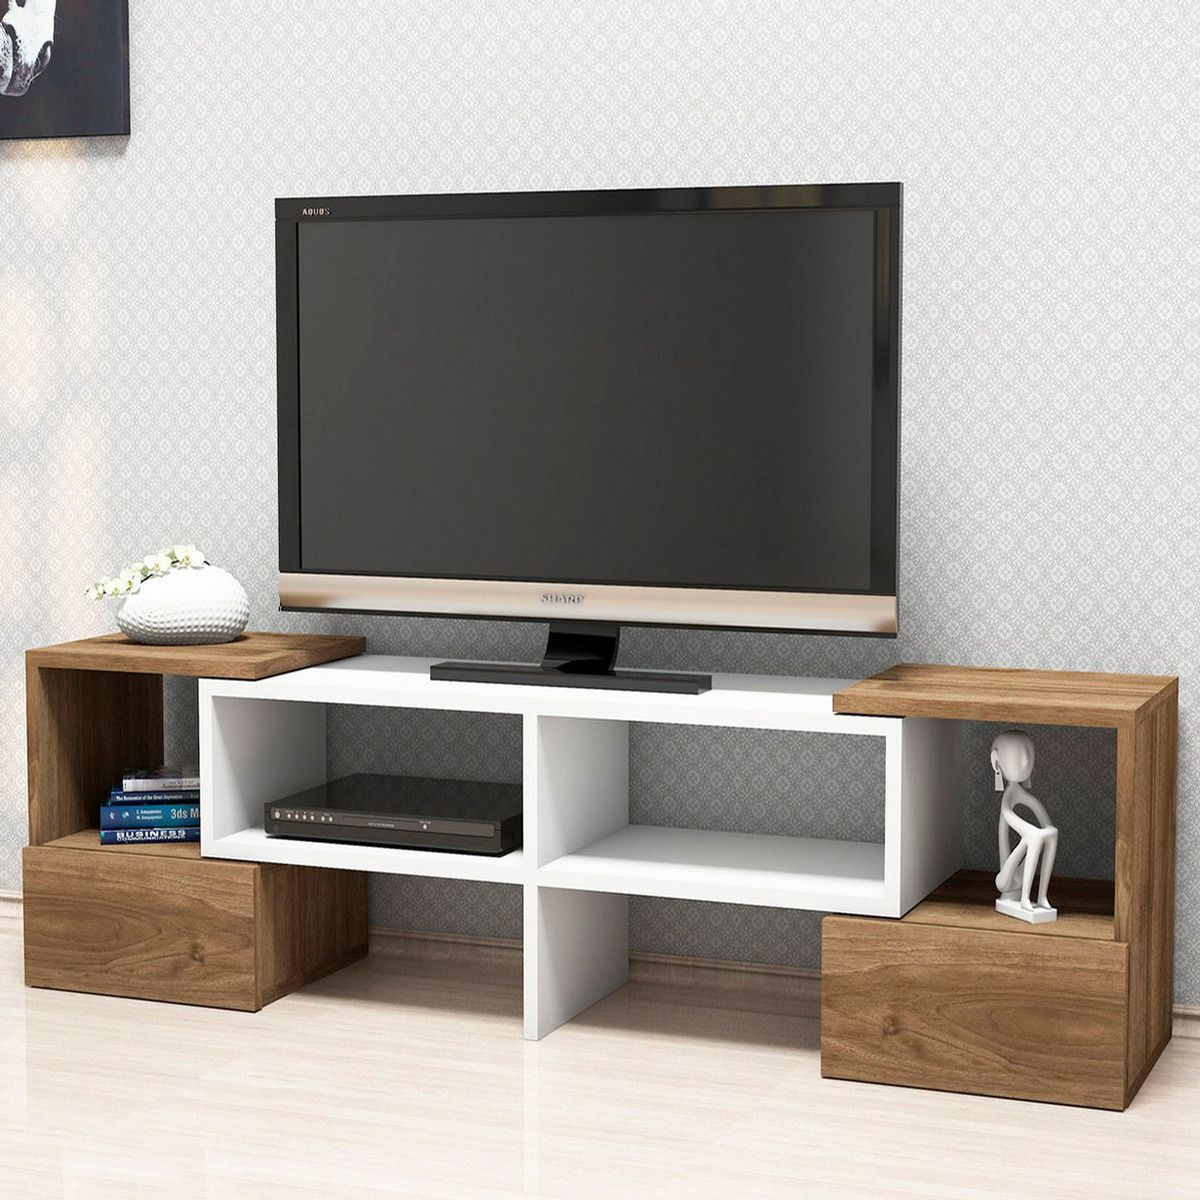 Meuble Tv Fold - Meuble Tv Design But Trendy Meuble Television With Meuble Tv [mjhdah]https://toilinux.com/49209-thickbox_default/meuble-tv-moderne-fold-141-x-39-cm-blanc-et-marron.jpg